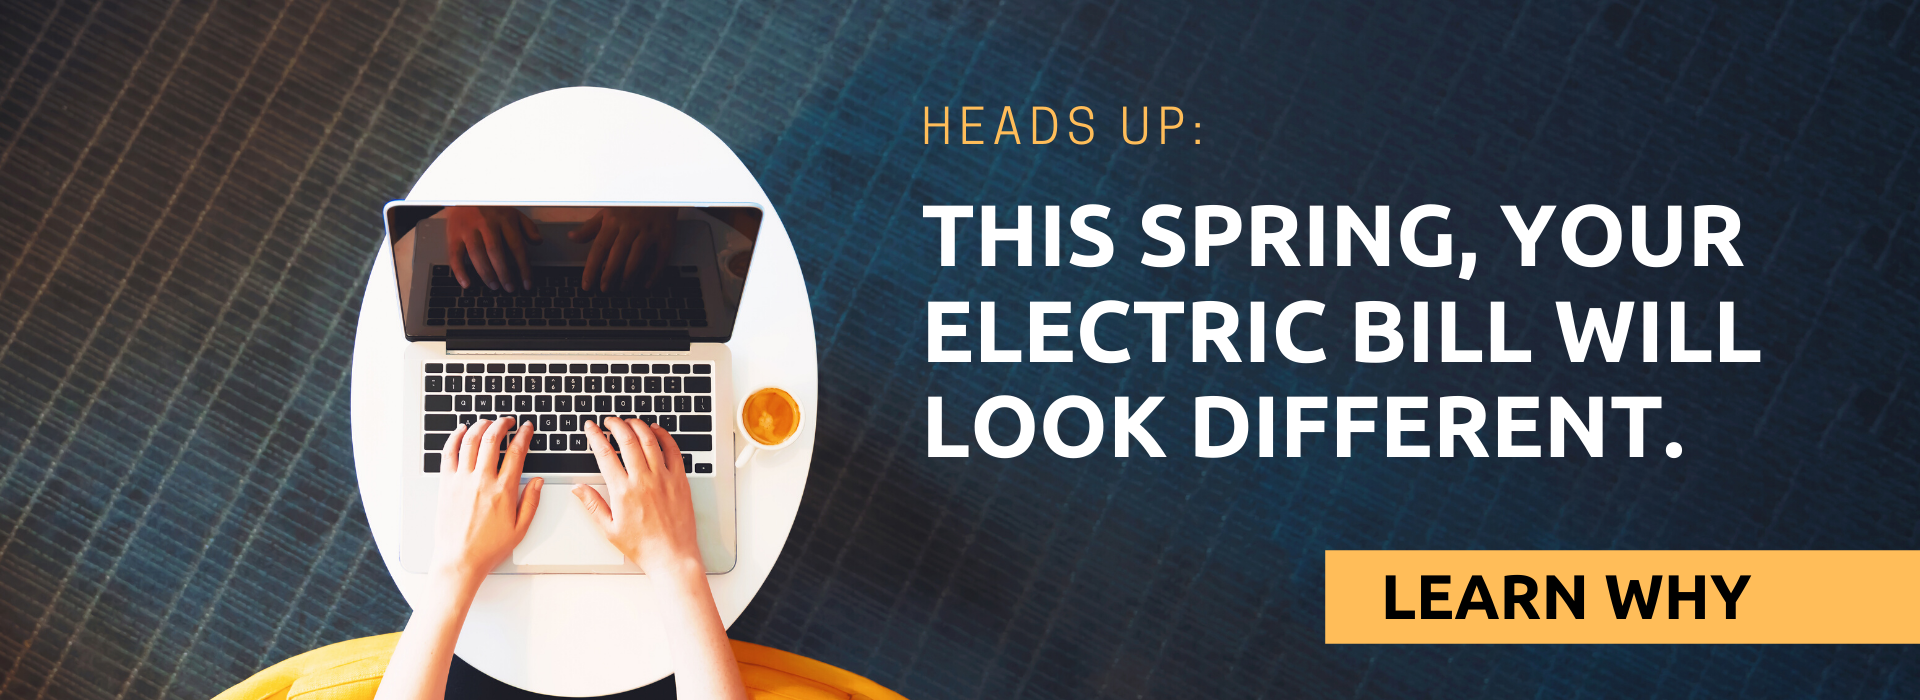 This spring, your electric bill will look different. Click to learn more!